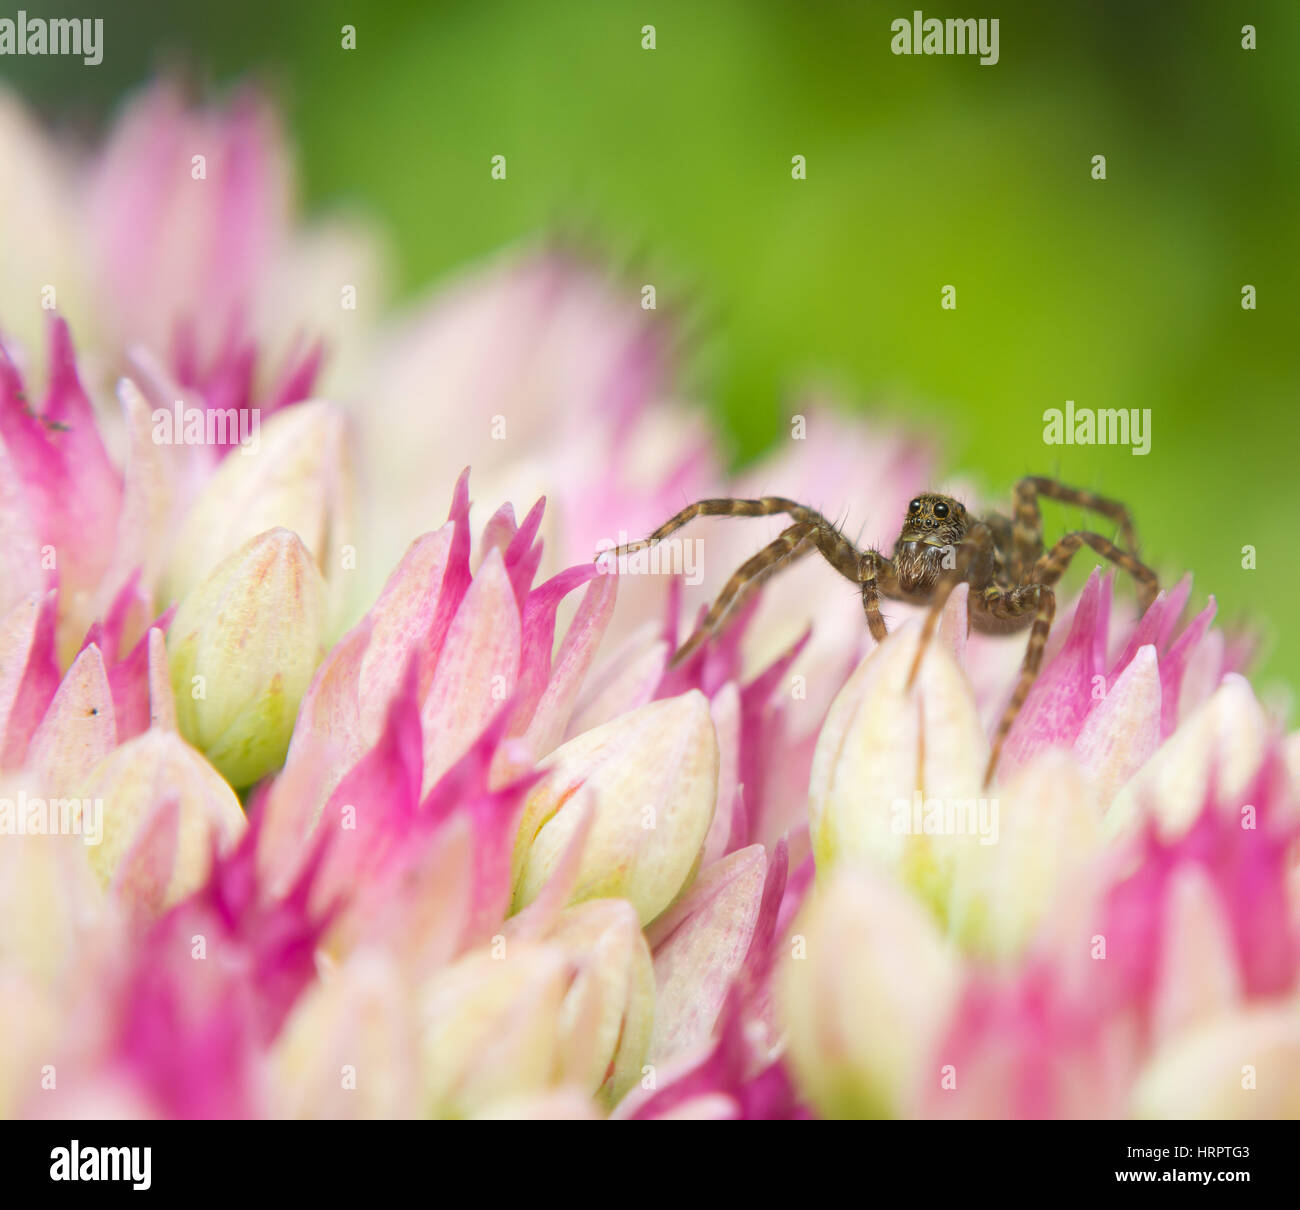 Common wolf spider on top of pink flowers. Pardosa pullata. - Stock Image